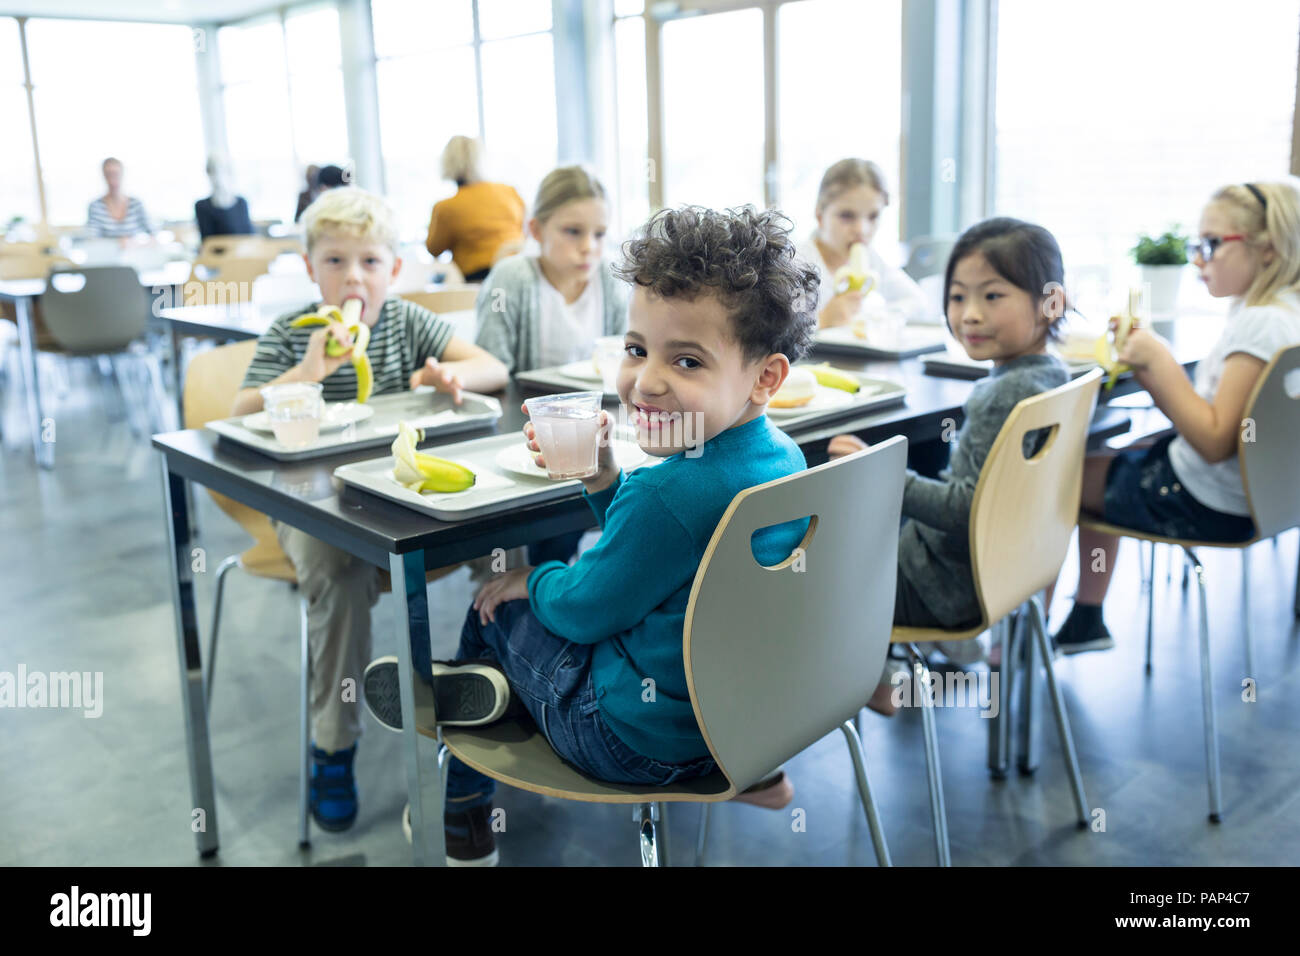 Pupils having lunch in school canteen - Stock Image